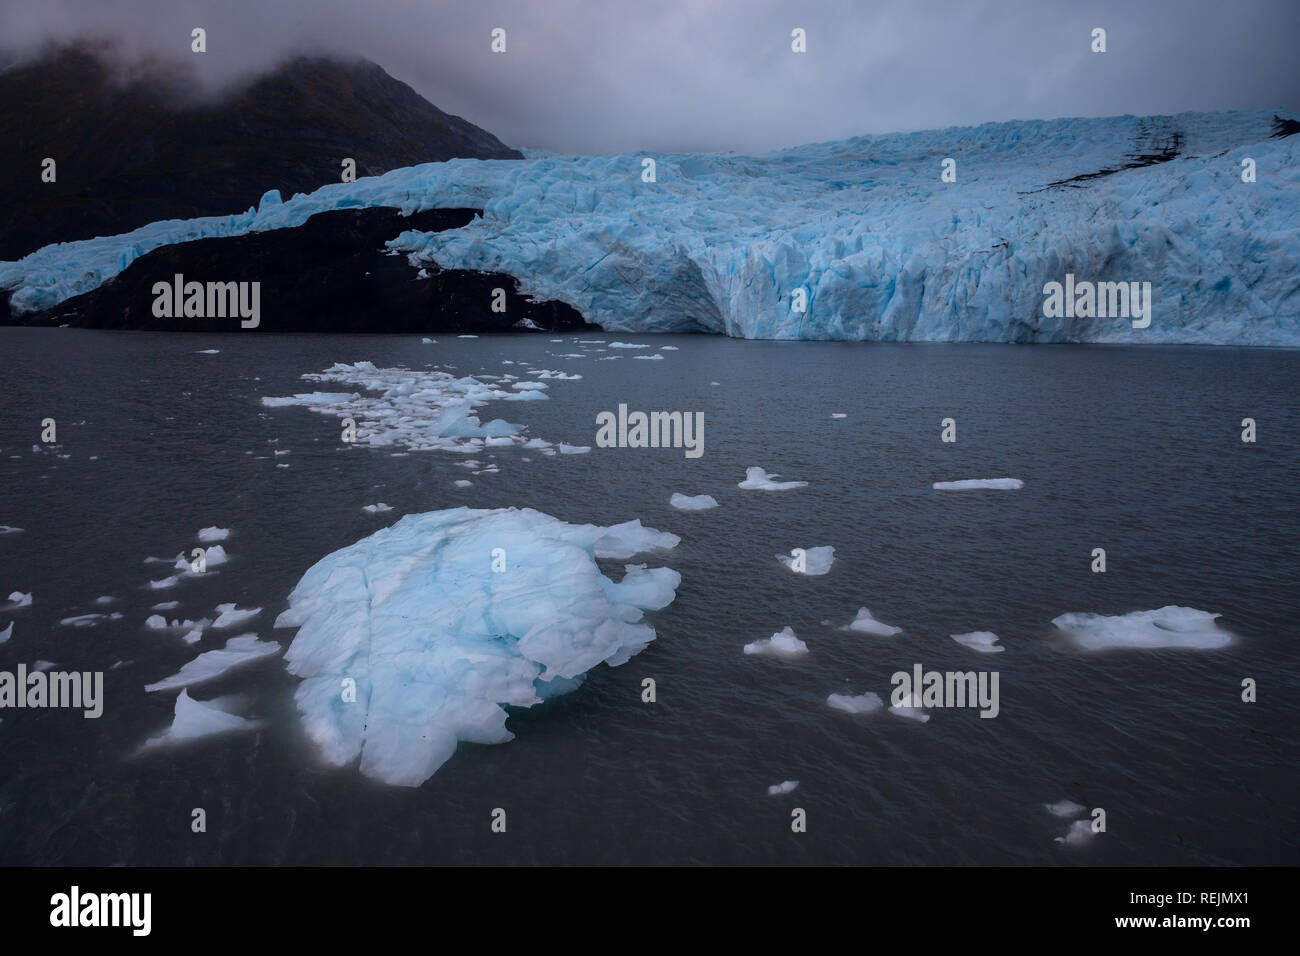 Icebergs float away from the foot of Portage Glacier - Stock Image